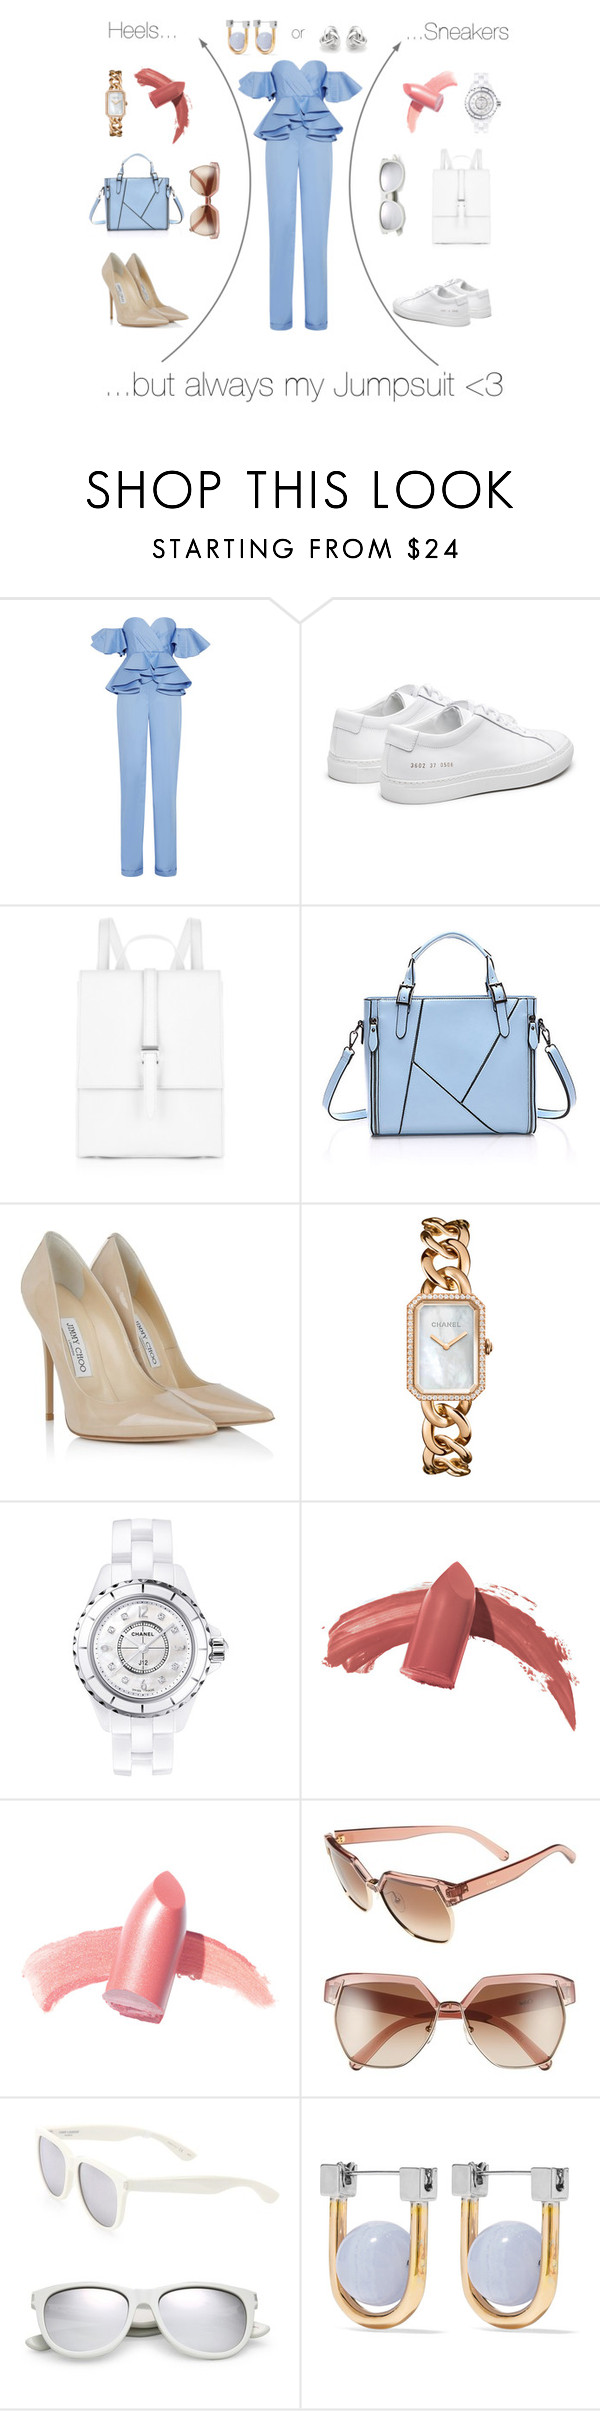 """Jumpsuit N°2"" by lovaconsultancy ❤ liked on Polyvore featuring Johanna Ortiz, Meli Melo, Jimmy Choo, Chanel, Elizabeth Arden, Chloé, Yves Saint Laurent, URiBE, Georgini and Blue"